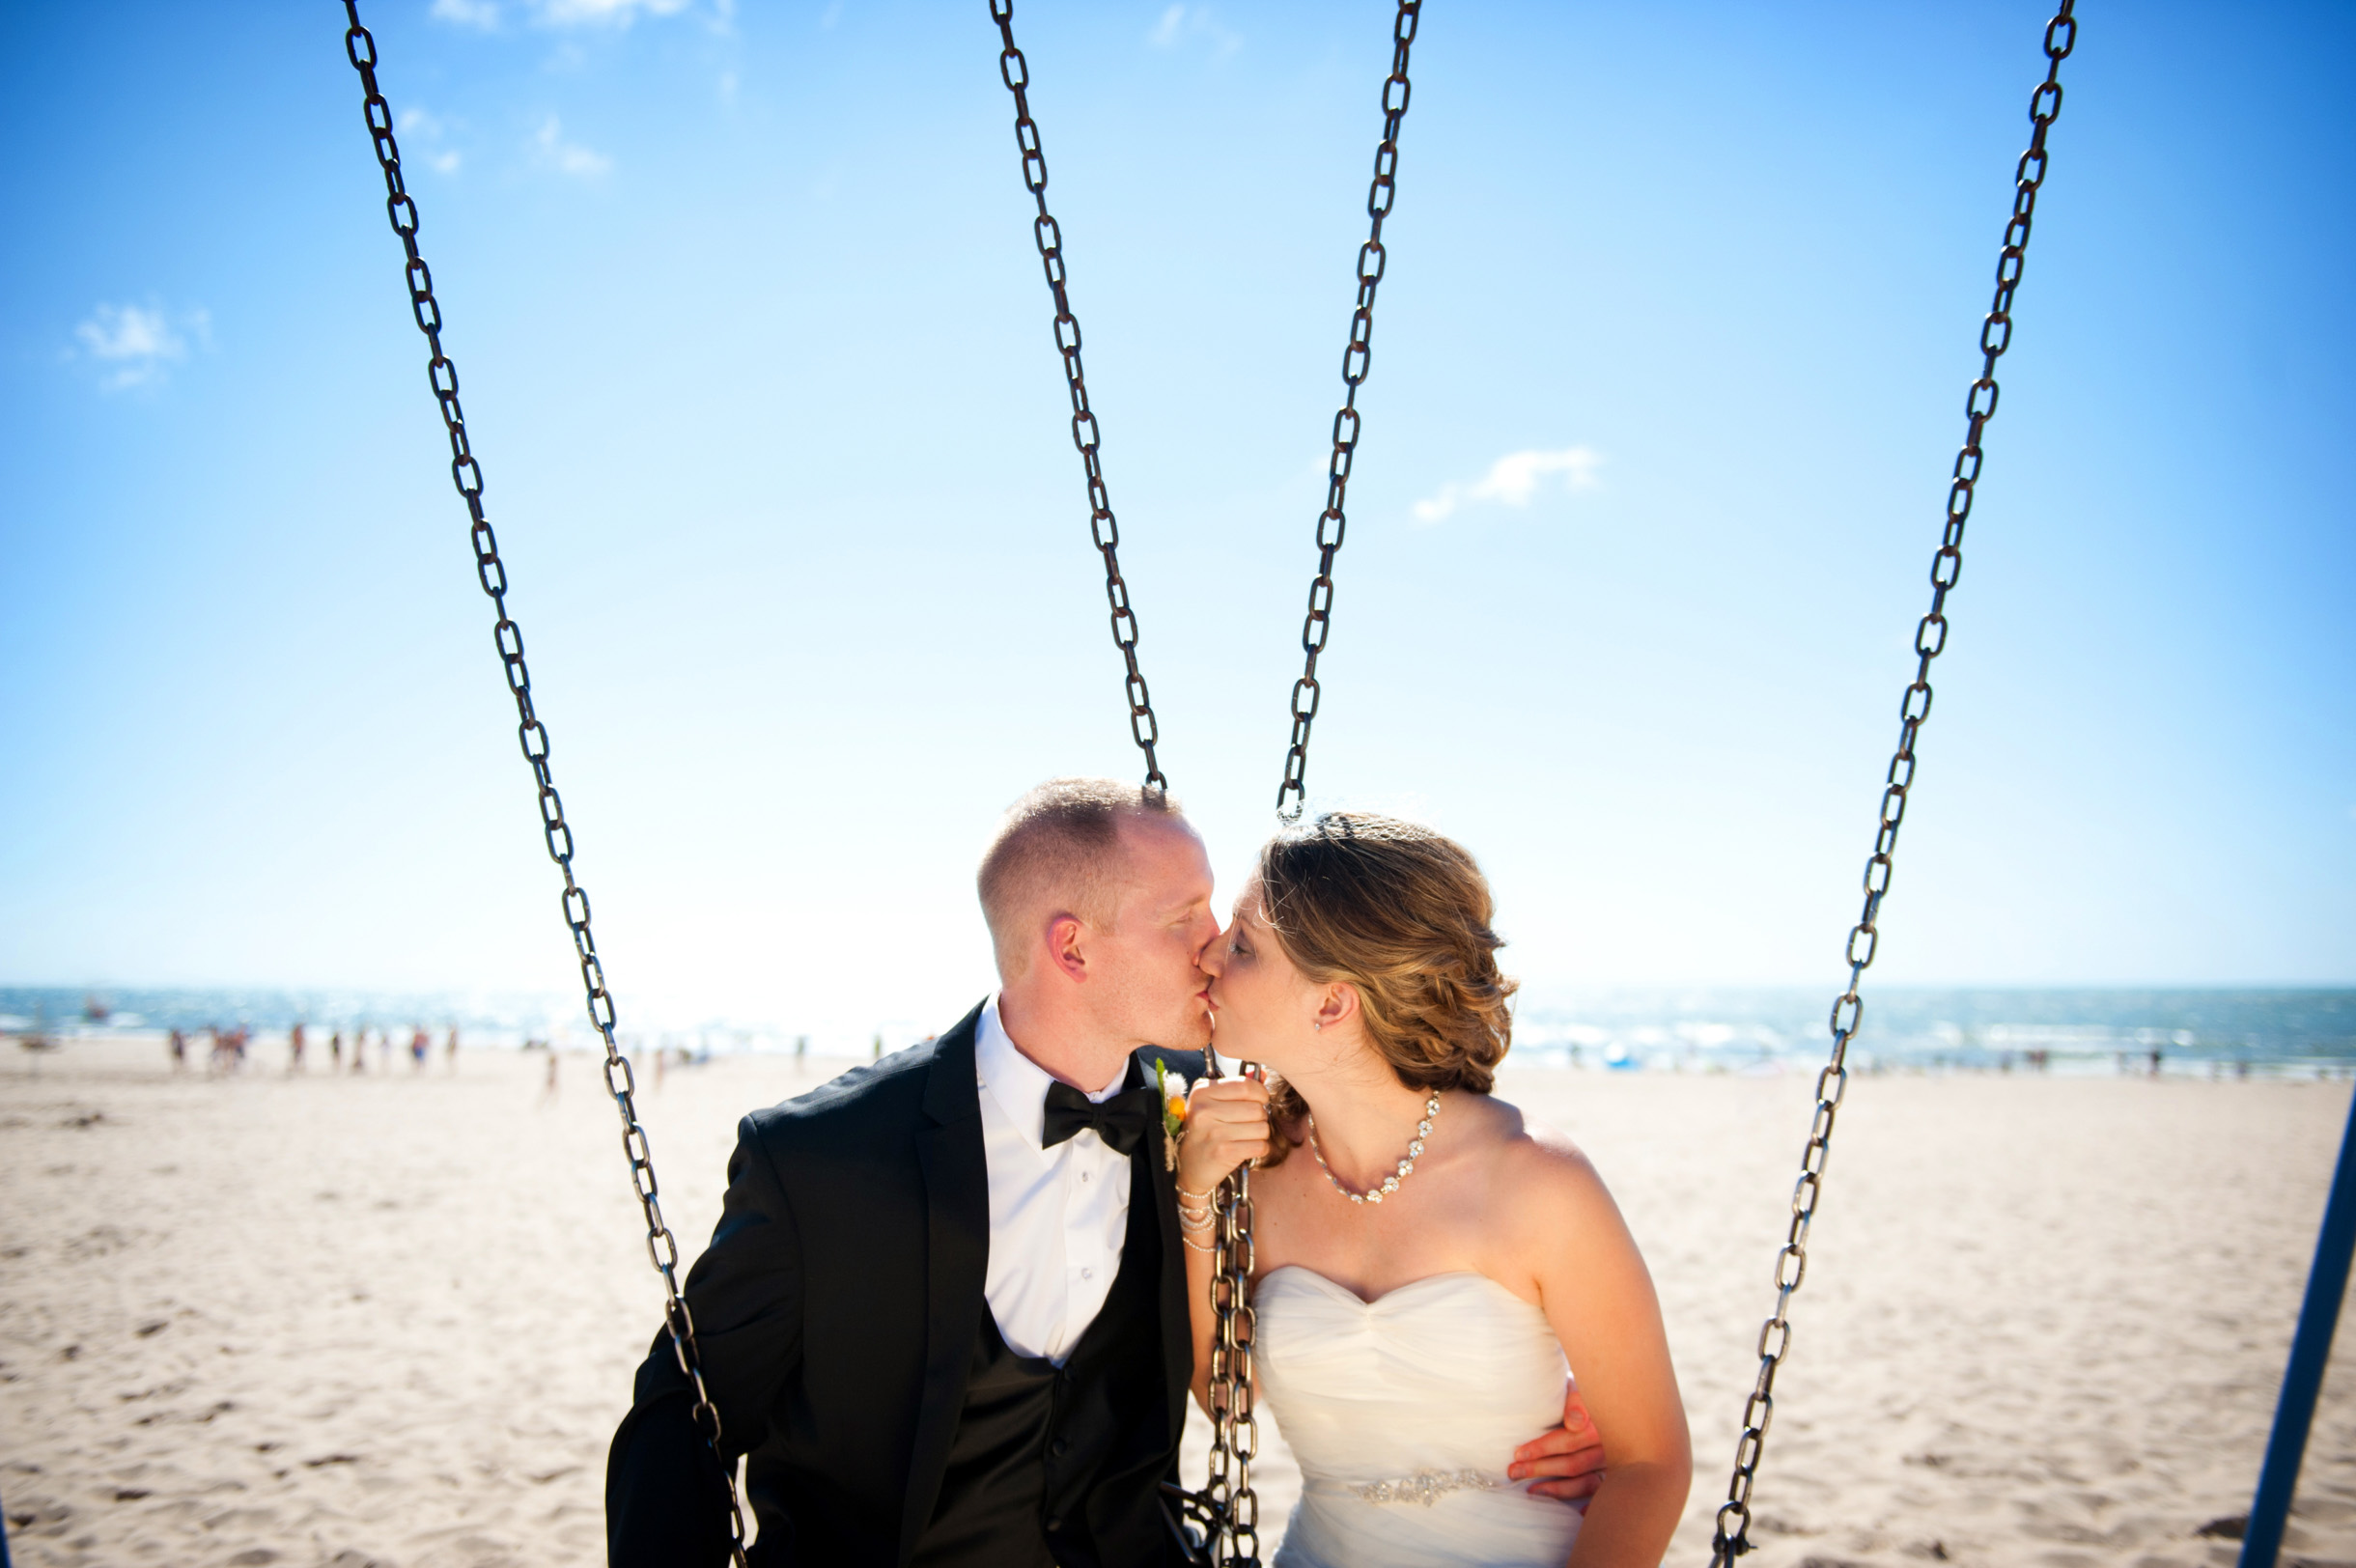 Bride and Groom on swing kissing at Beach Destination Wedding